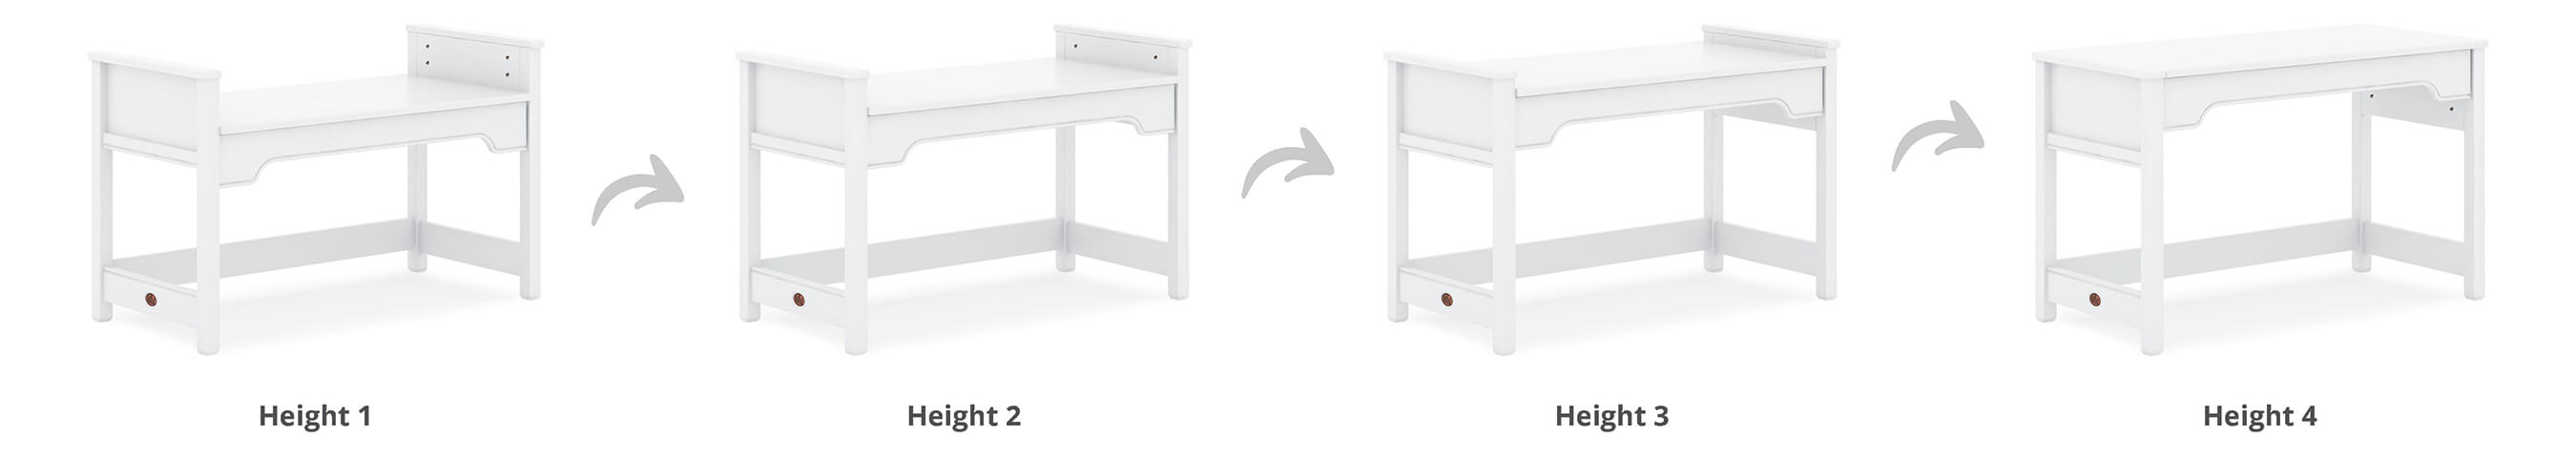 Feature_Highlight_CMS_Blocks_Height_Adjustable_Desks_and_Chairs_January_2021-049